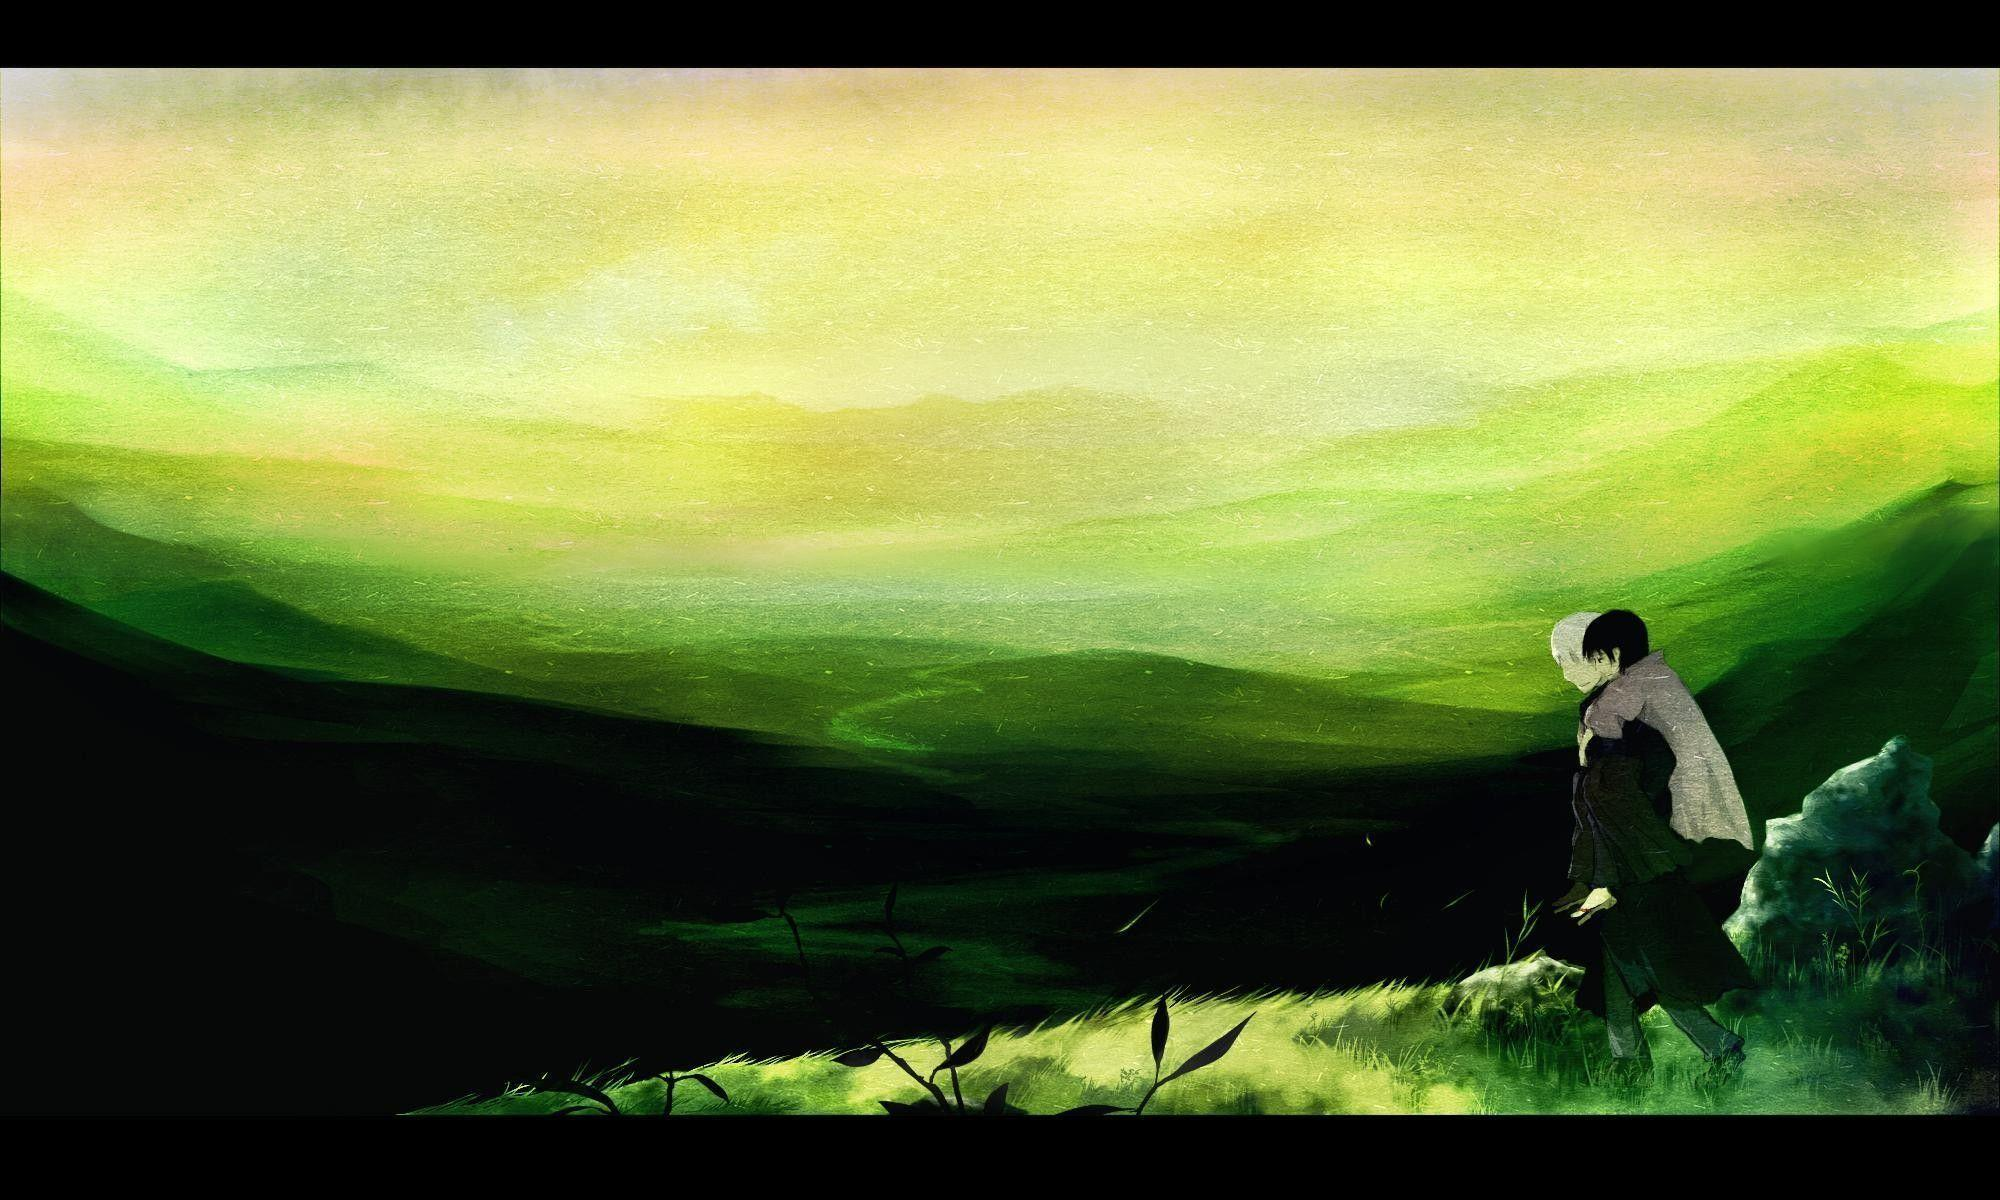 Mushishi wallpapers ·① Download free full HD backgrounds for desktop